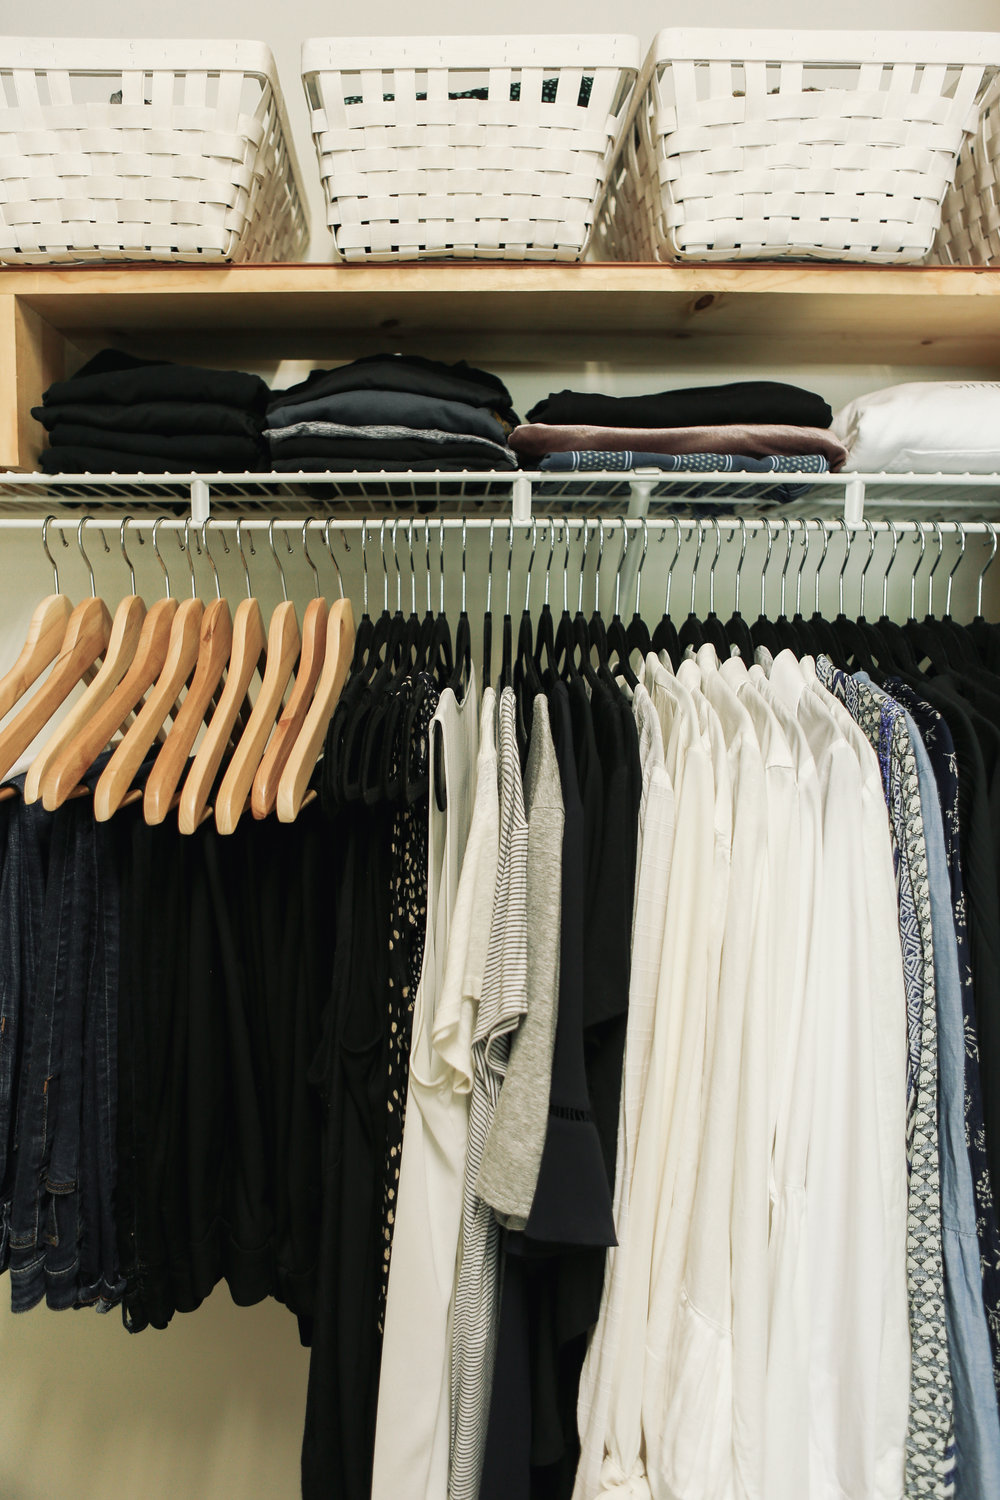 Step 3 - Now take your closet to the next level and color code. Within the clothing groups of pants, shirts, etc., put all white shirts together, then black and so on. This step will make it a snap to get ready in the morning and make your closet look organized and beautiful!